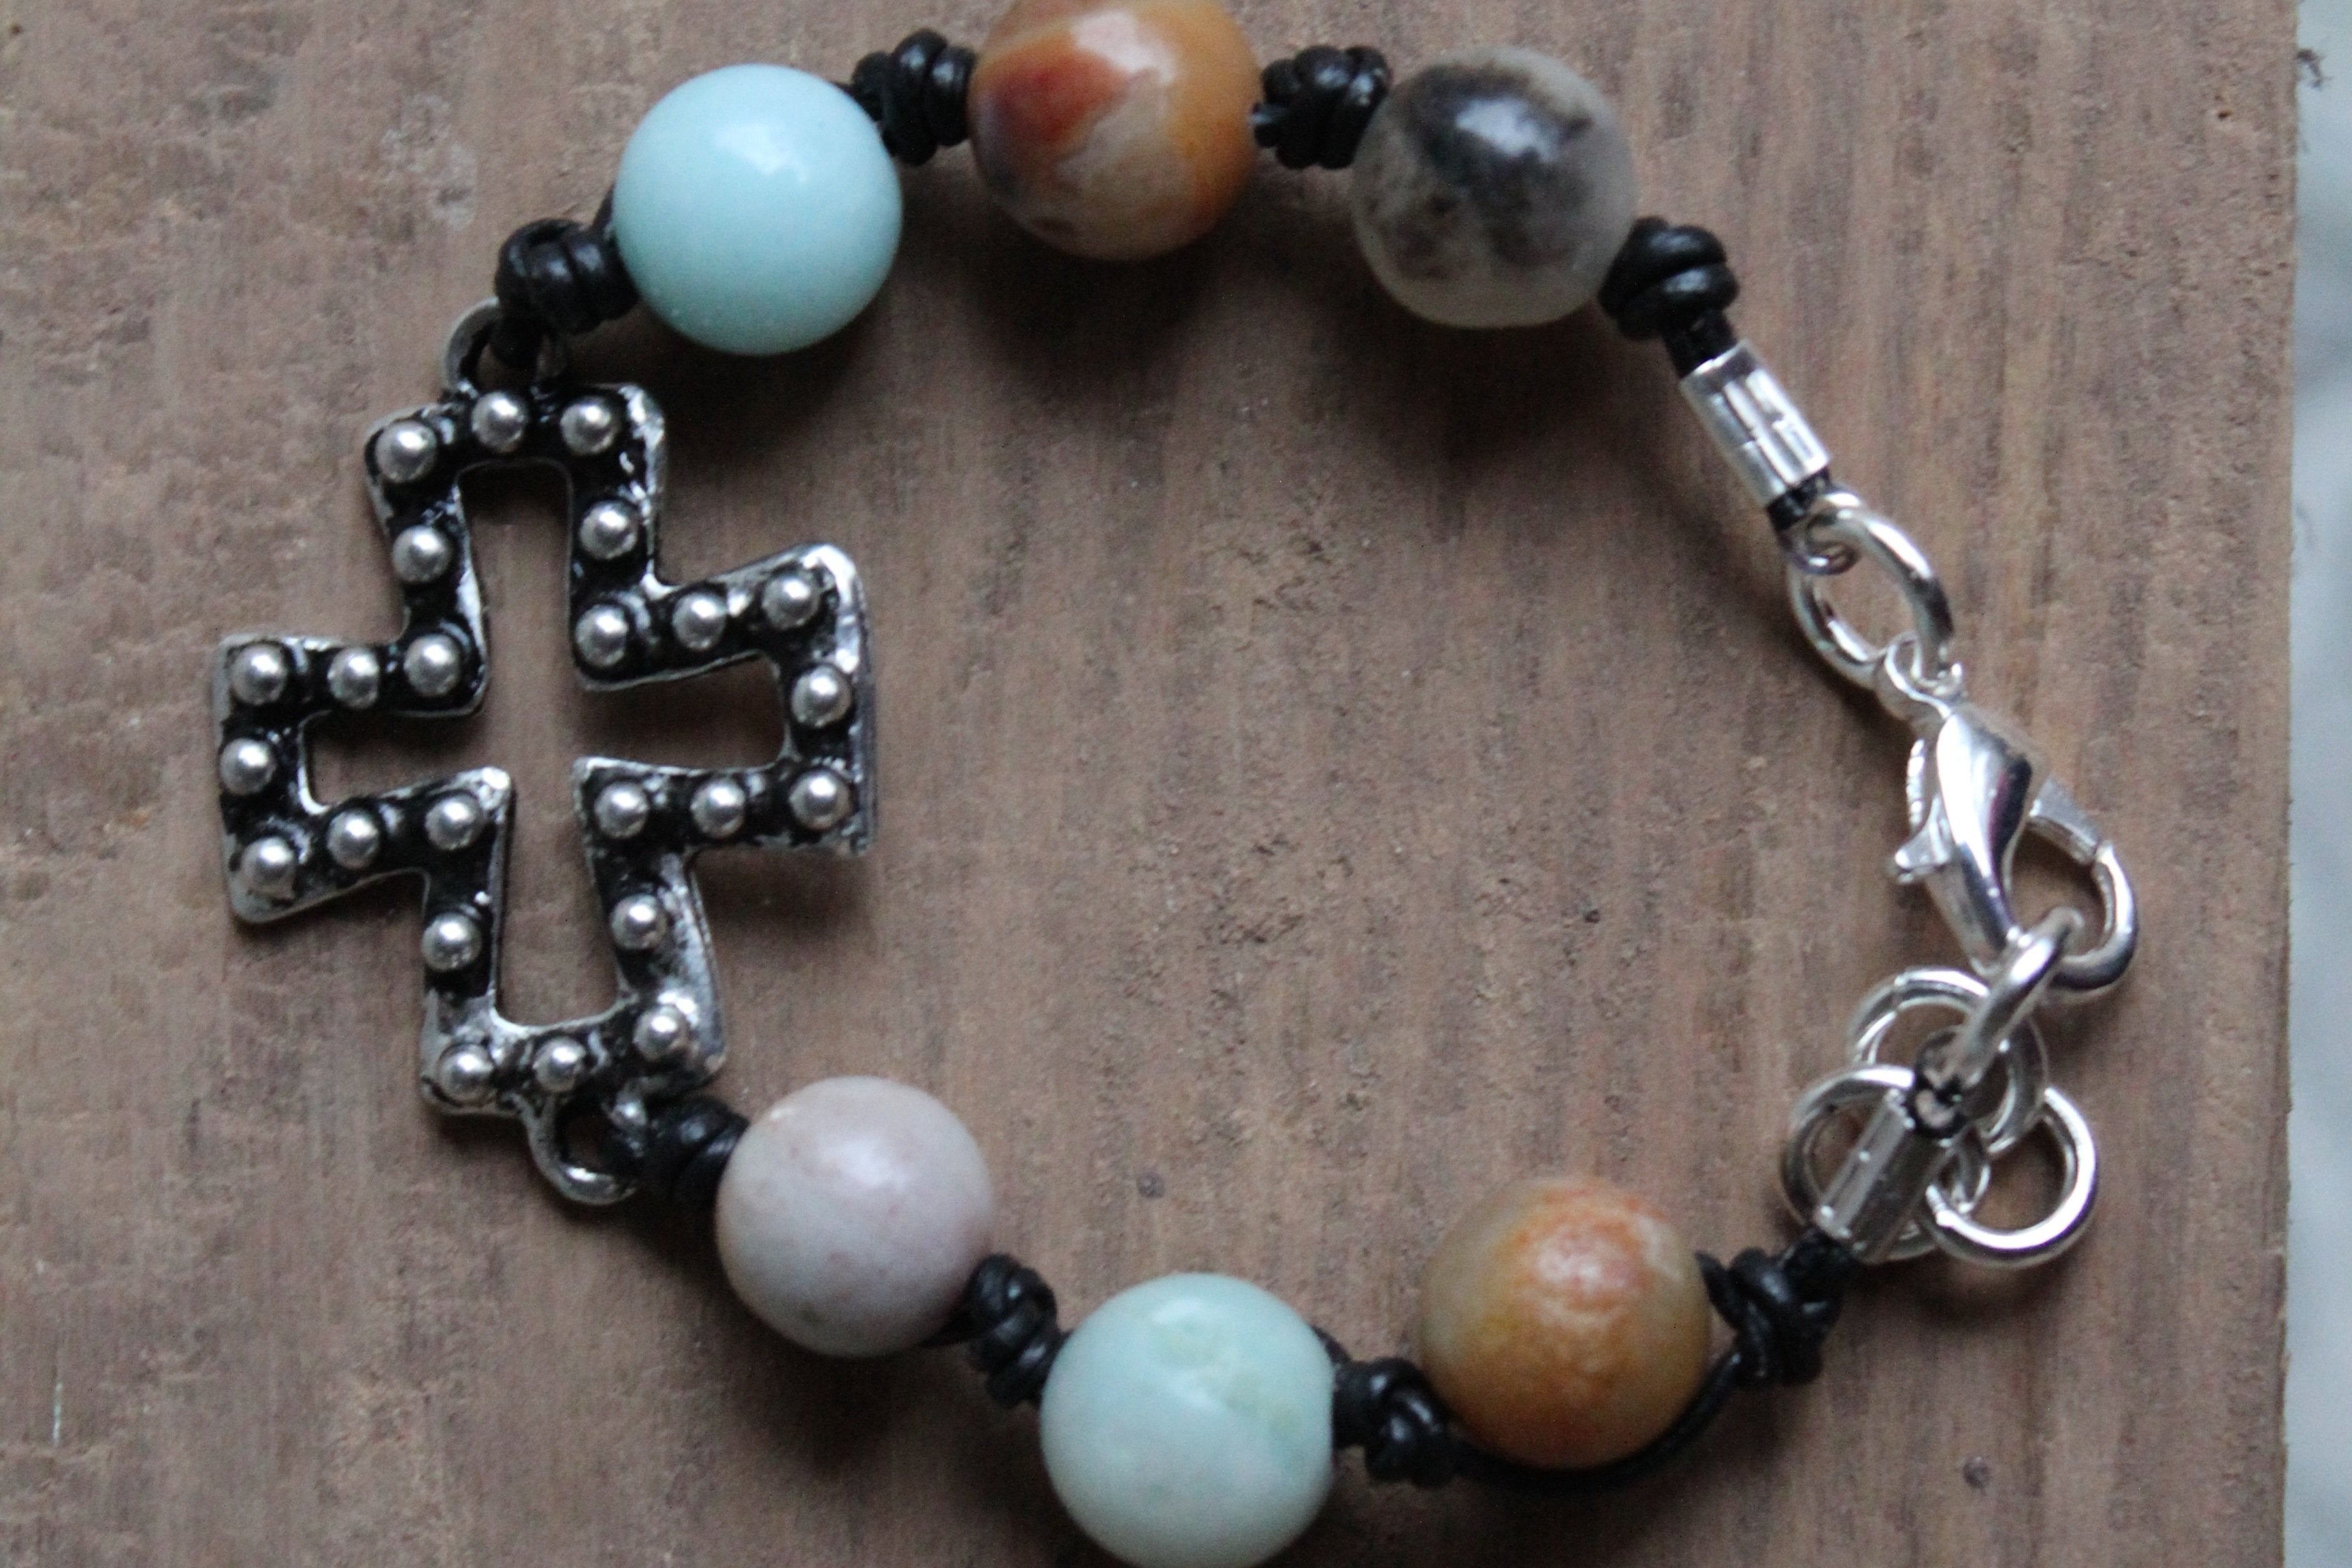 B031PBK; Bracelets; Open Pewter Studded Cross; Knotted Black Leather; Amazonite Beads; ; ; ; Majestees;